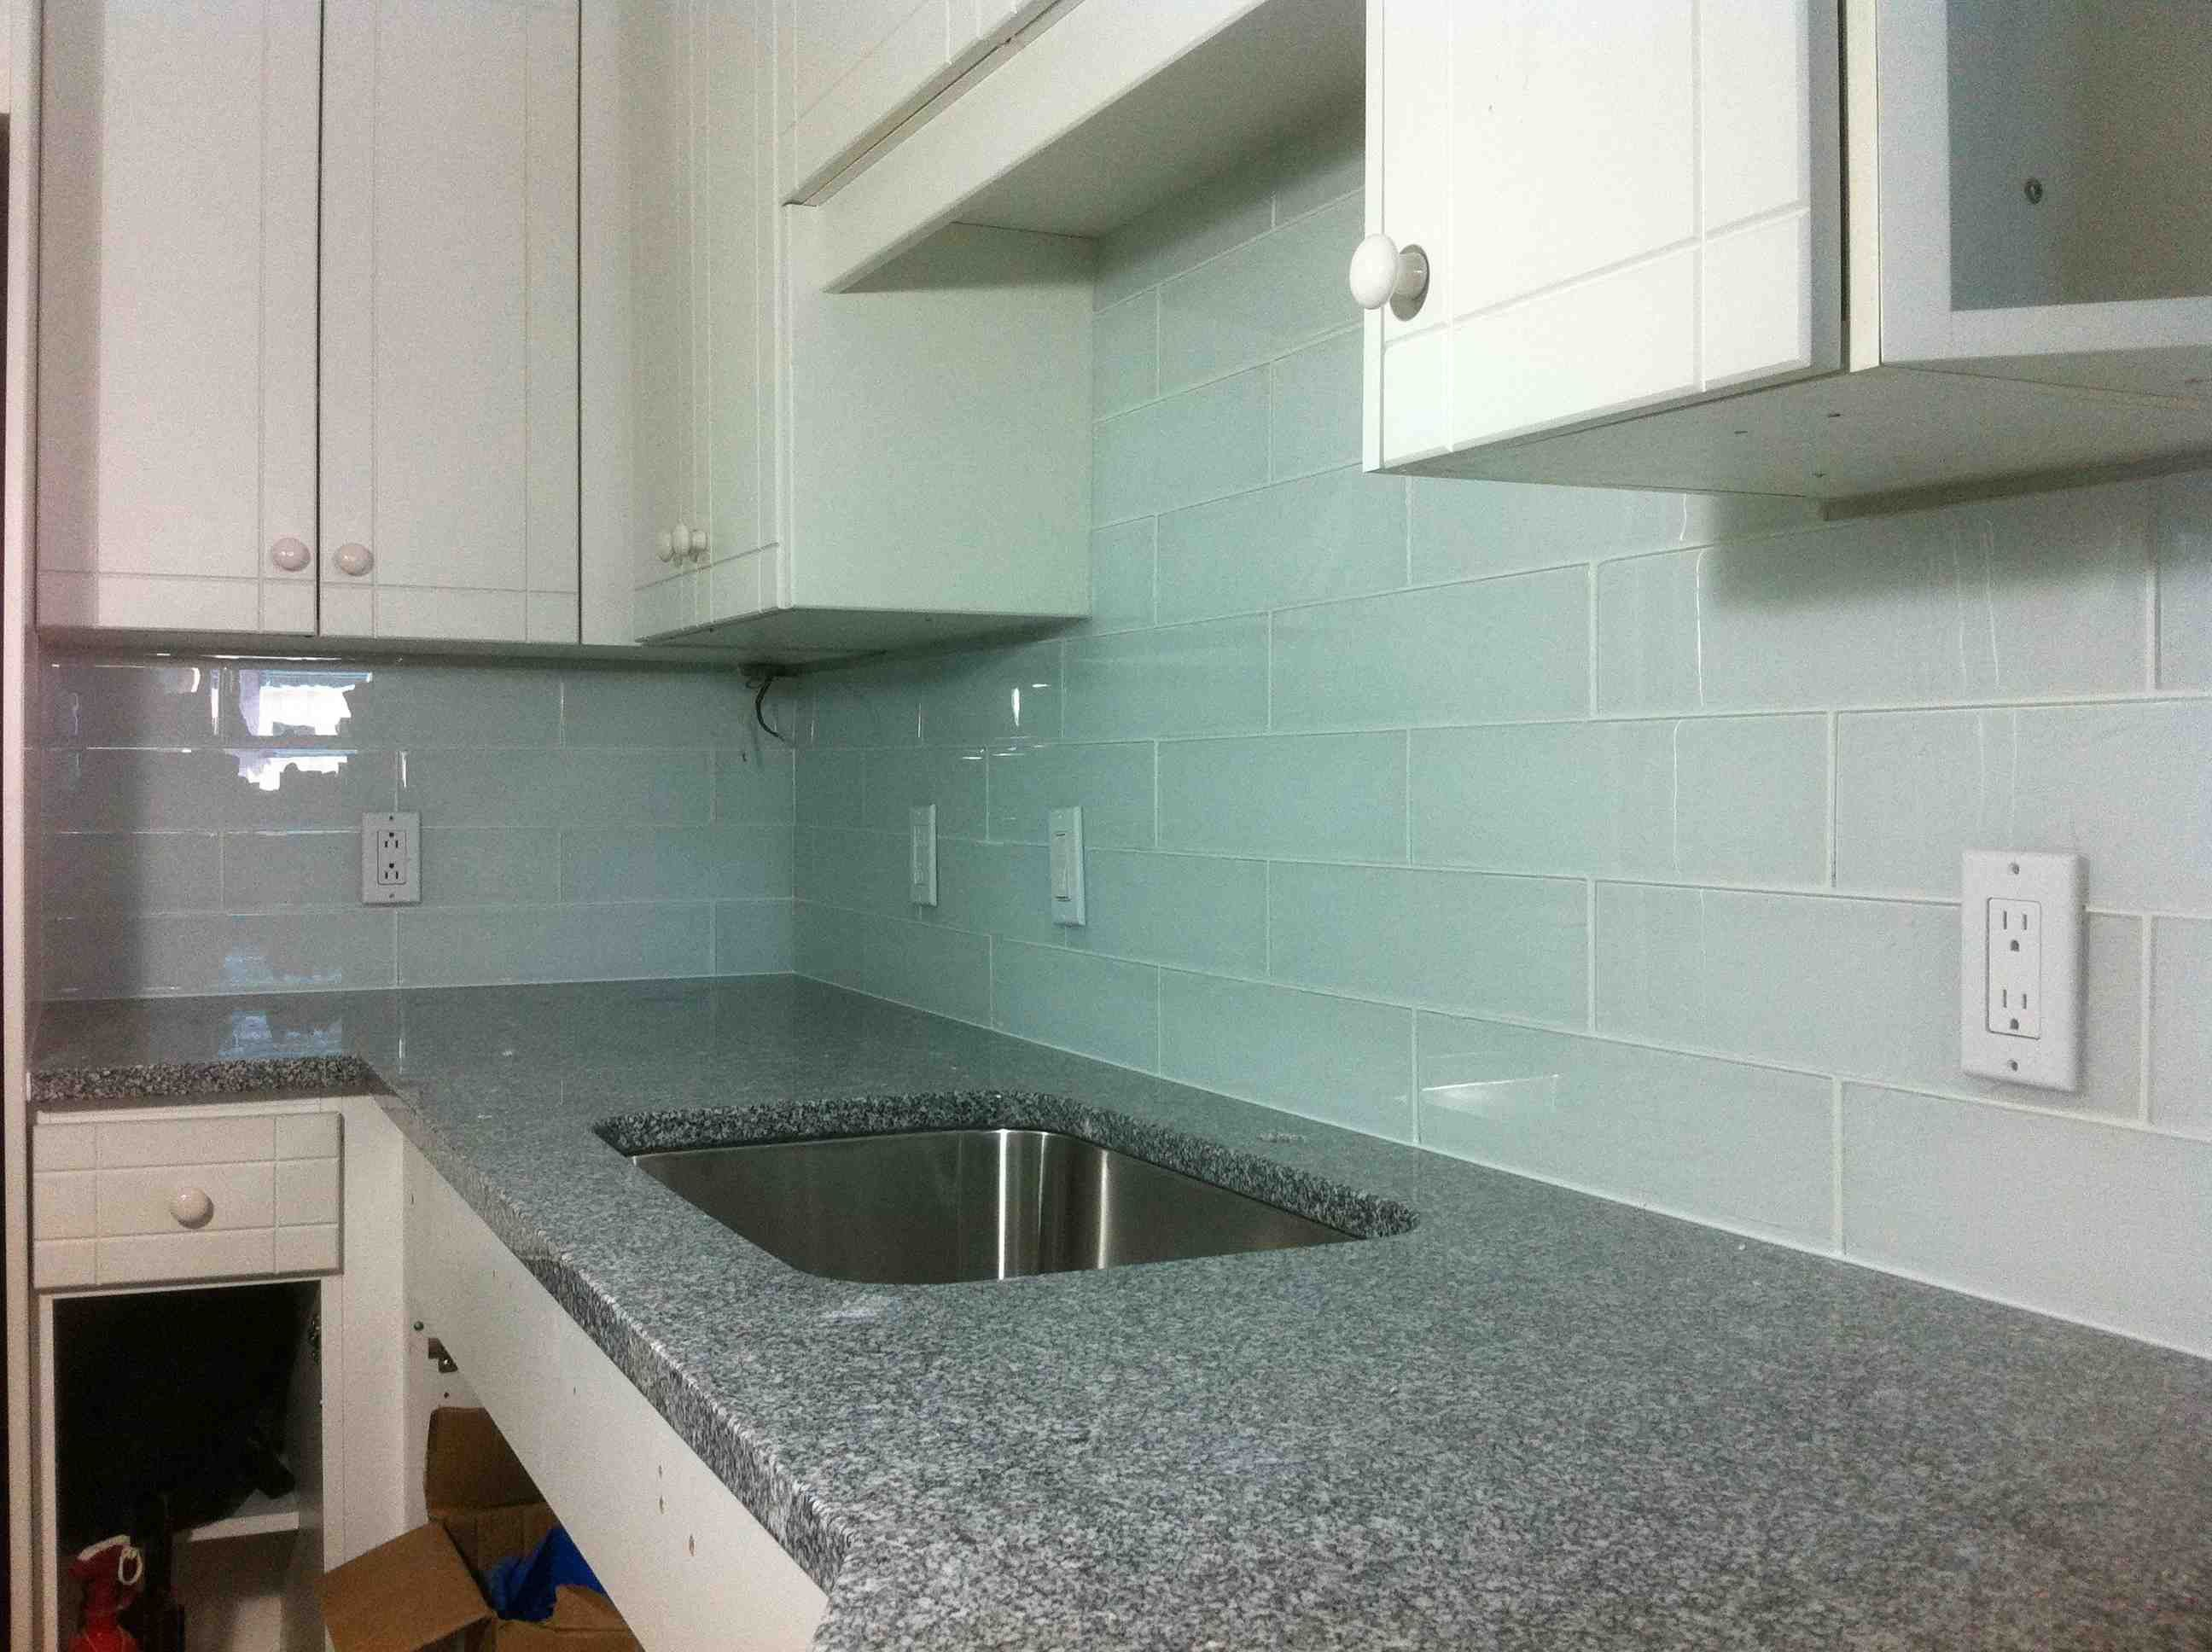 Kitchen Tiles Glass or maybe big glass subway tiles for the kitchen backsplash or